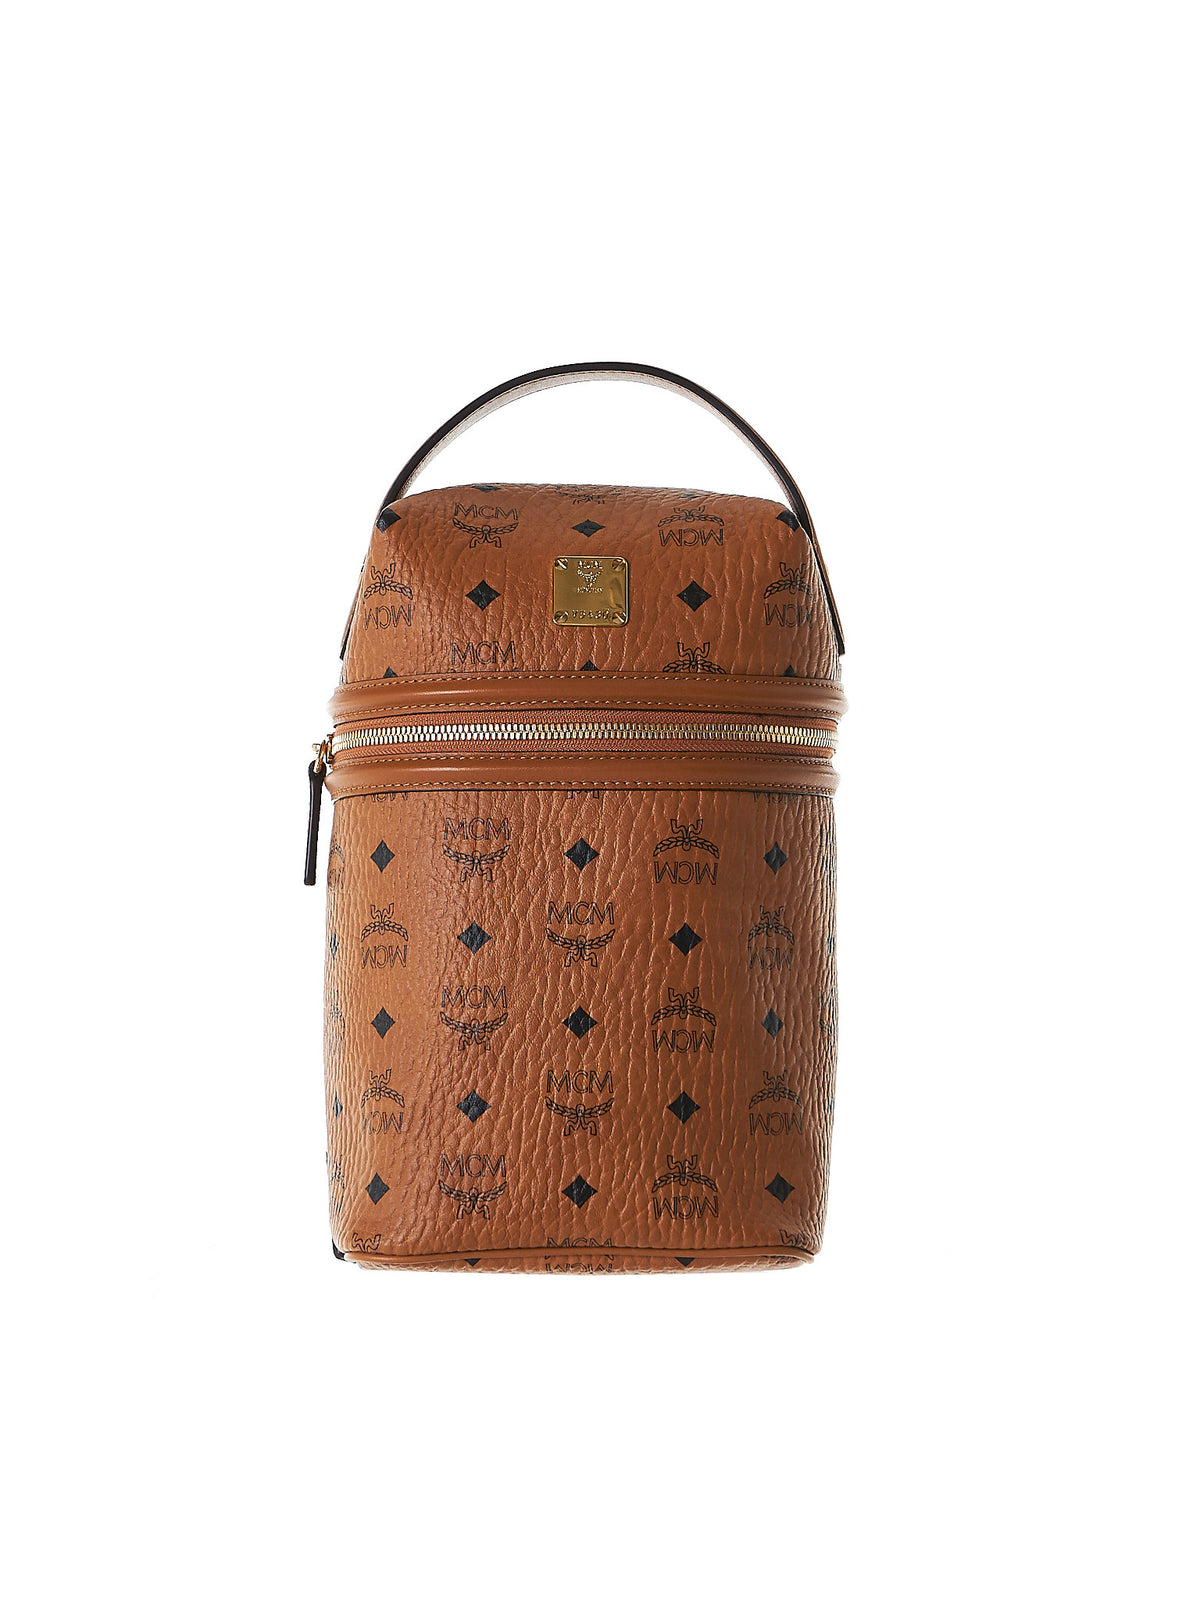 Zipped Leather Bucket Bag (MMZ7SOC10-COGNAC) - H. Lorenzo